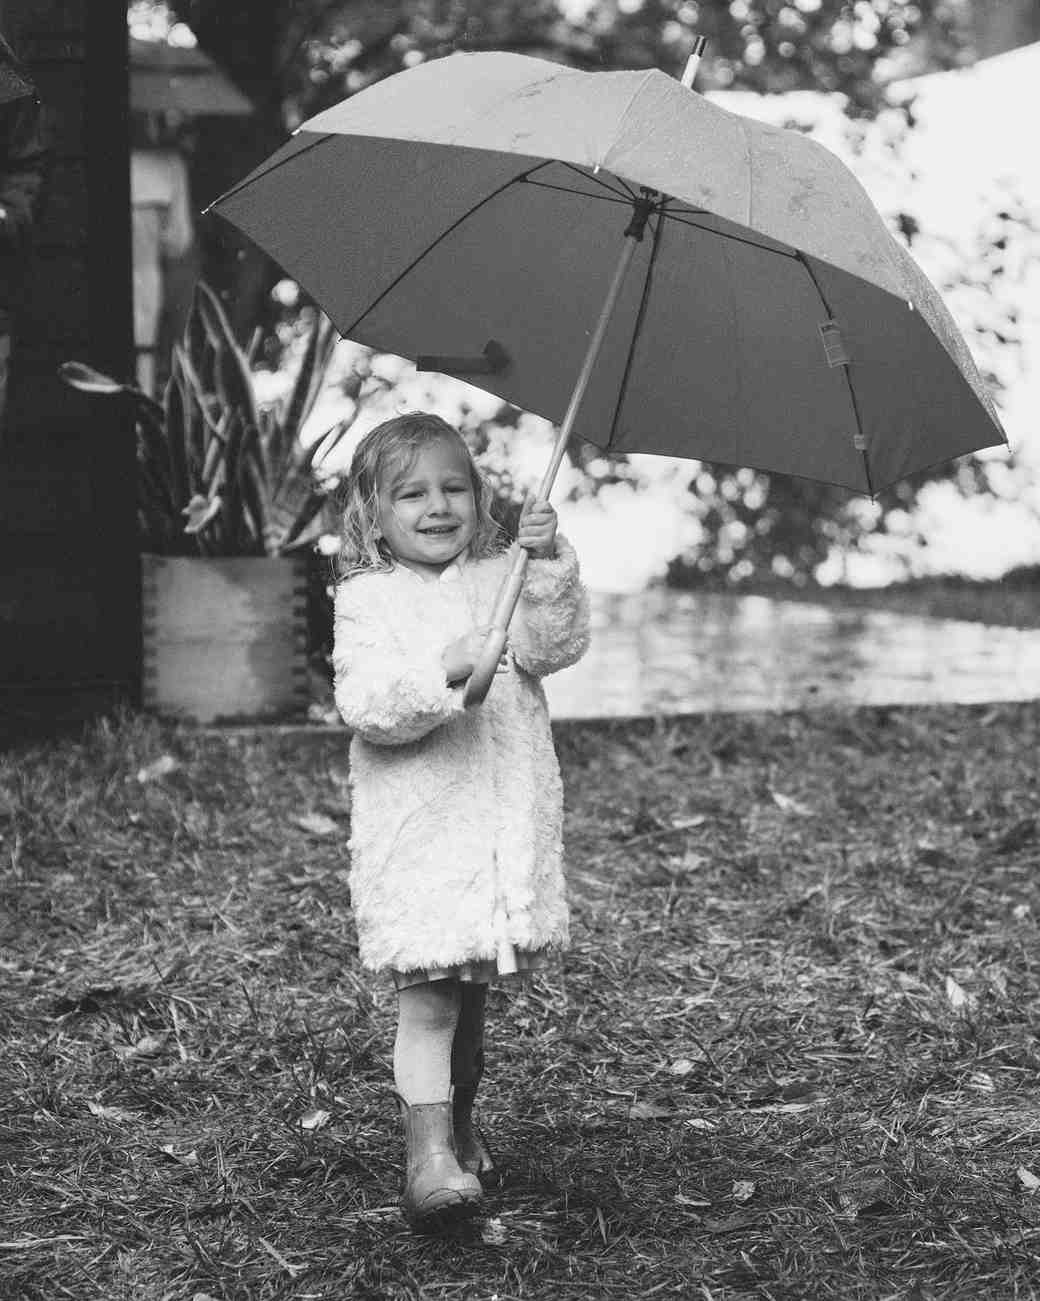 jessie tristan wedding tennessee child guest umbrella